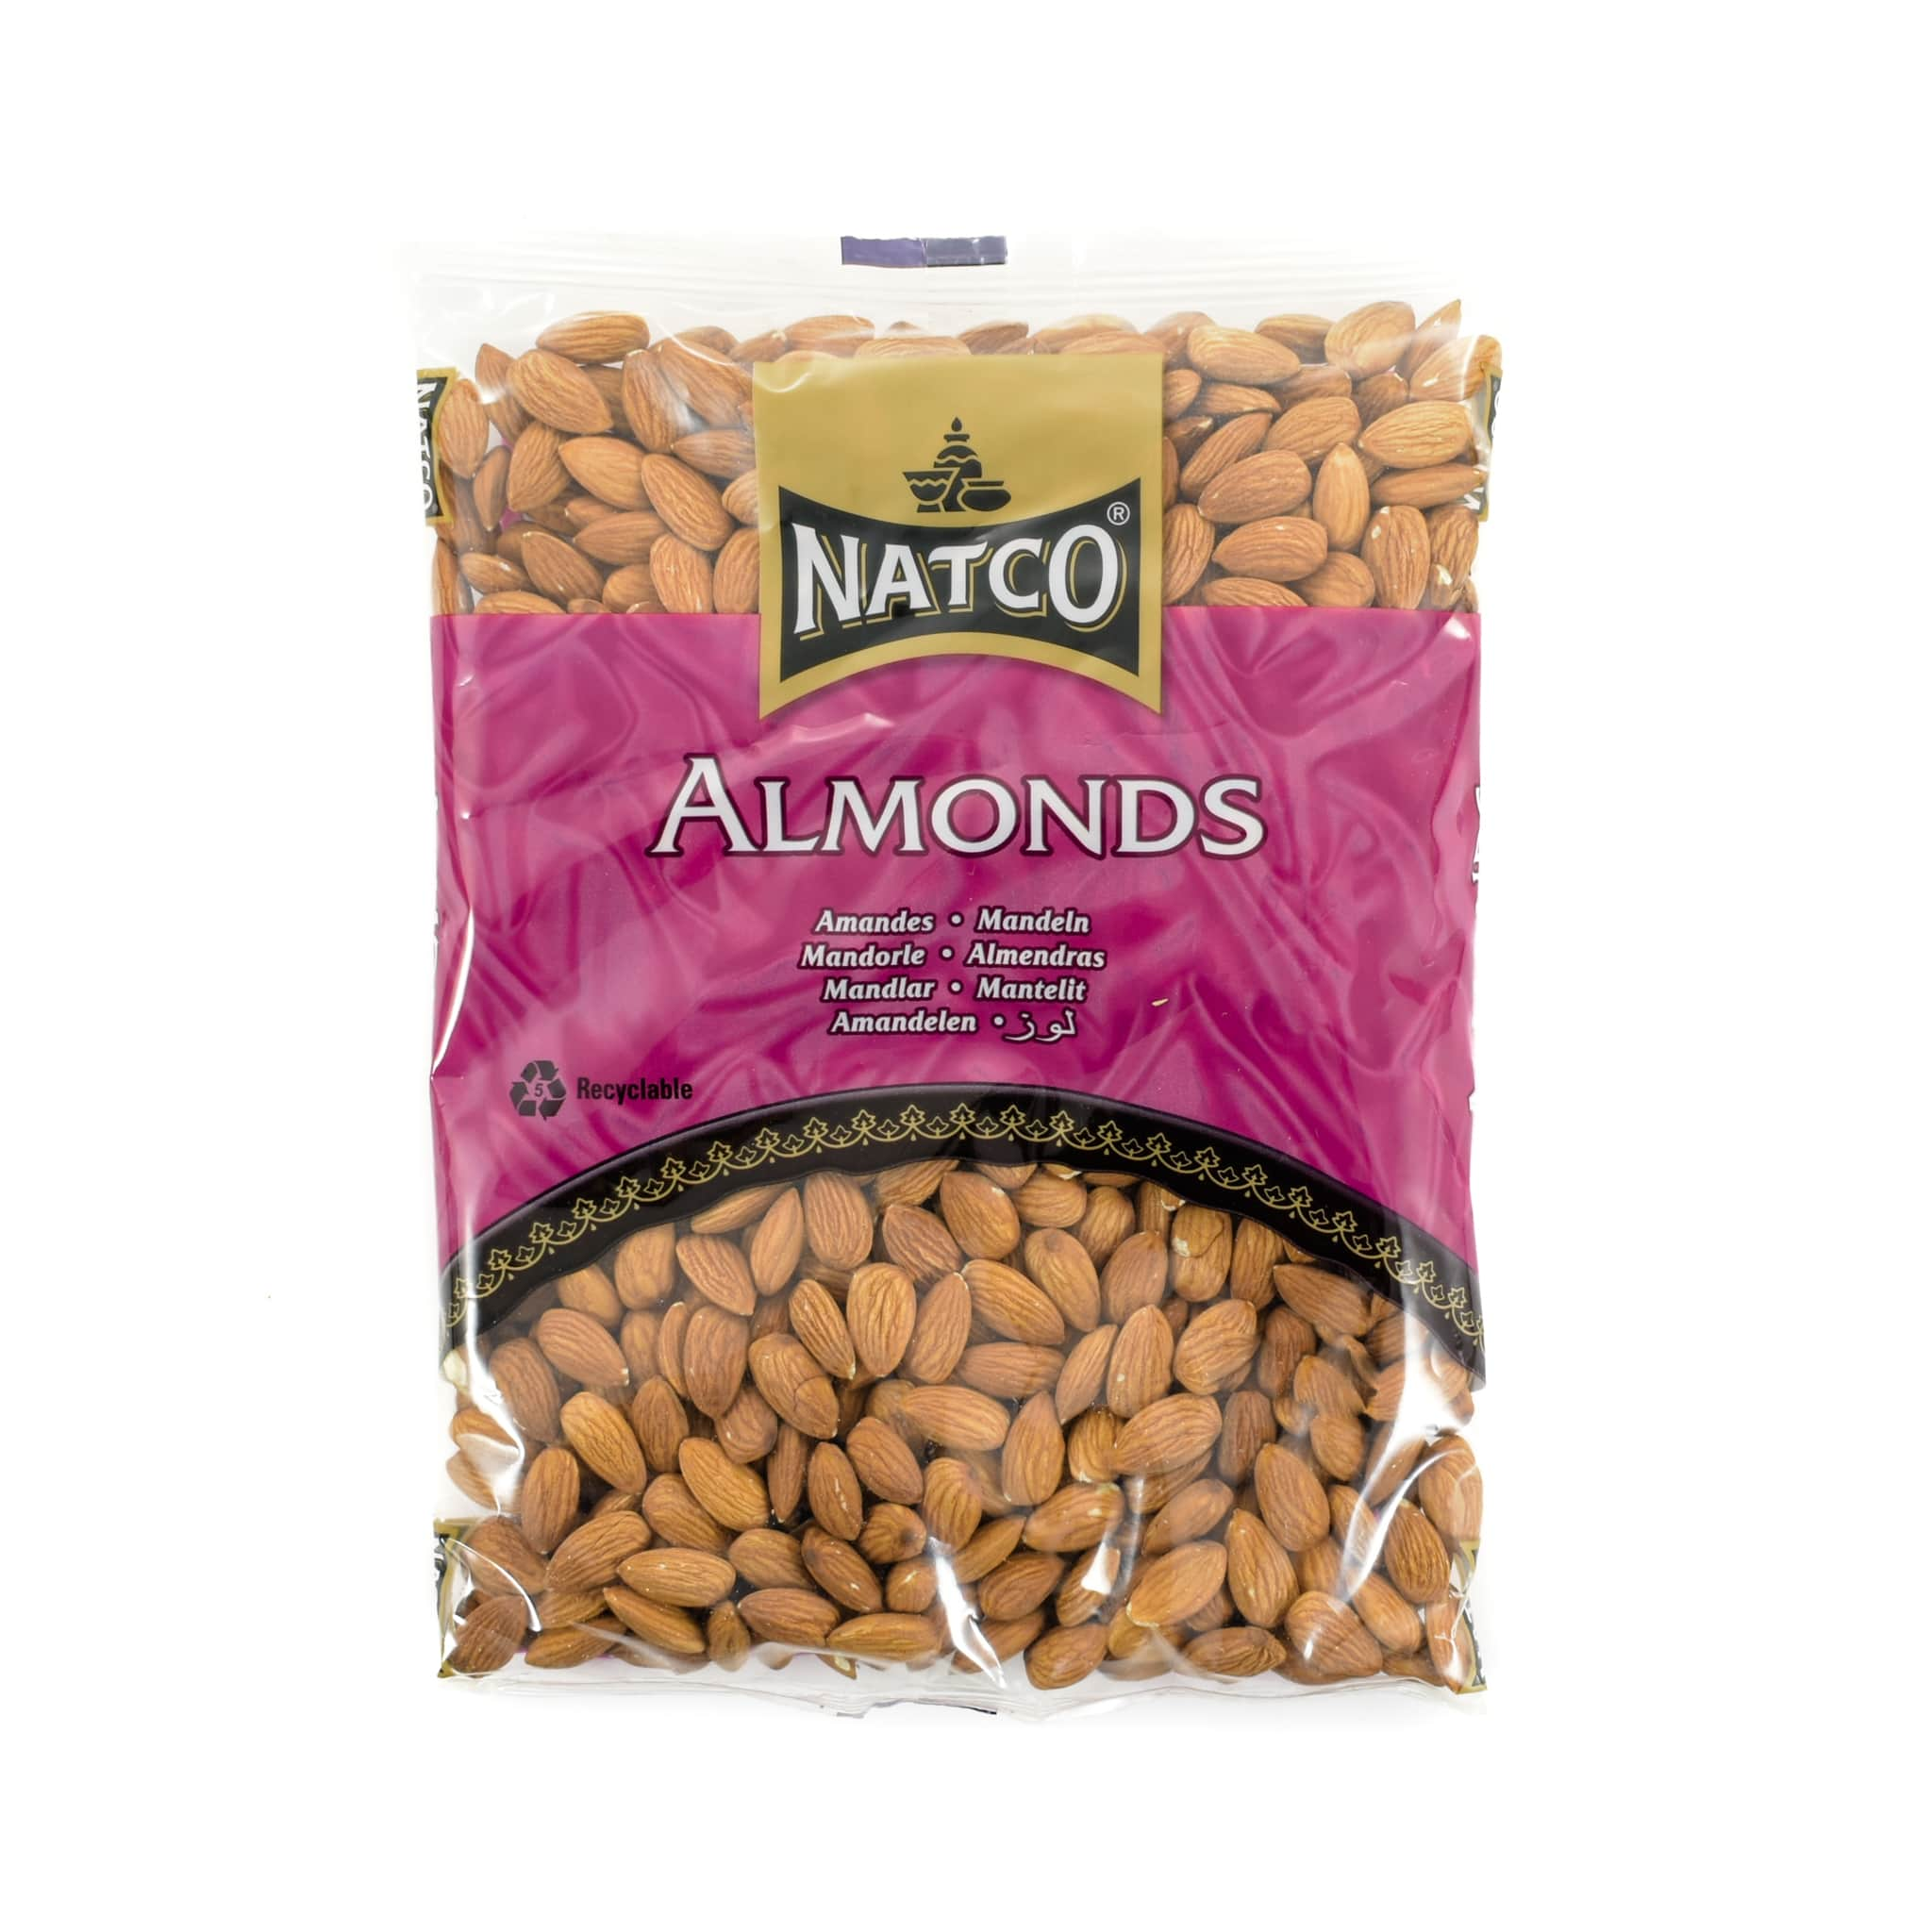 Natco Whole Almonds 750g